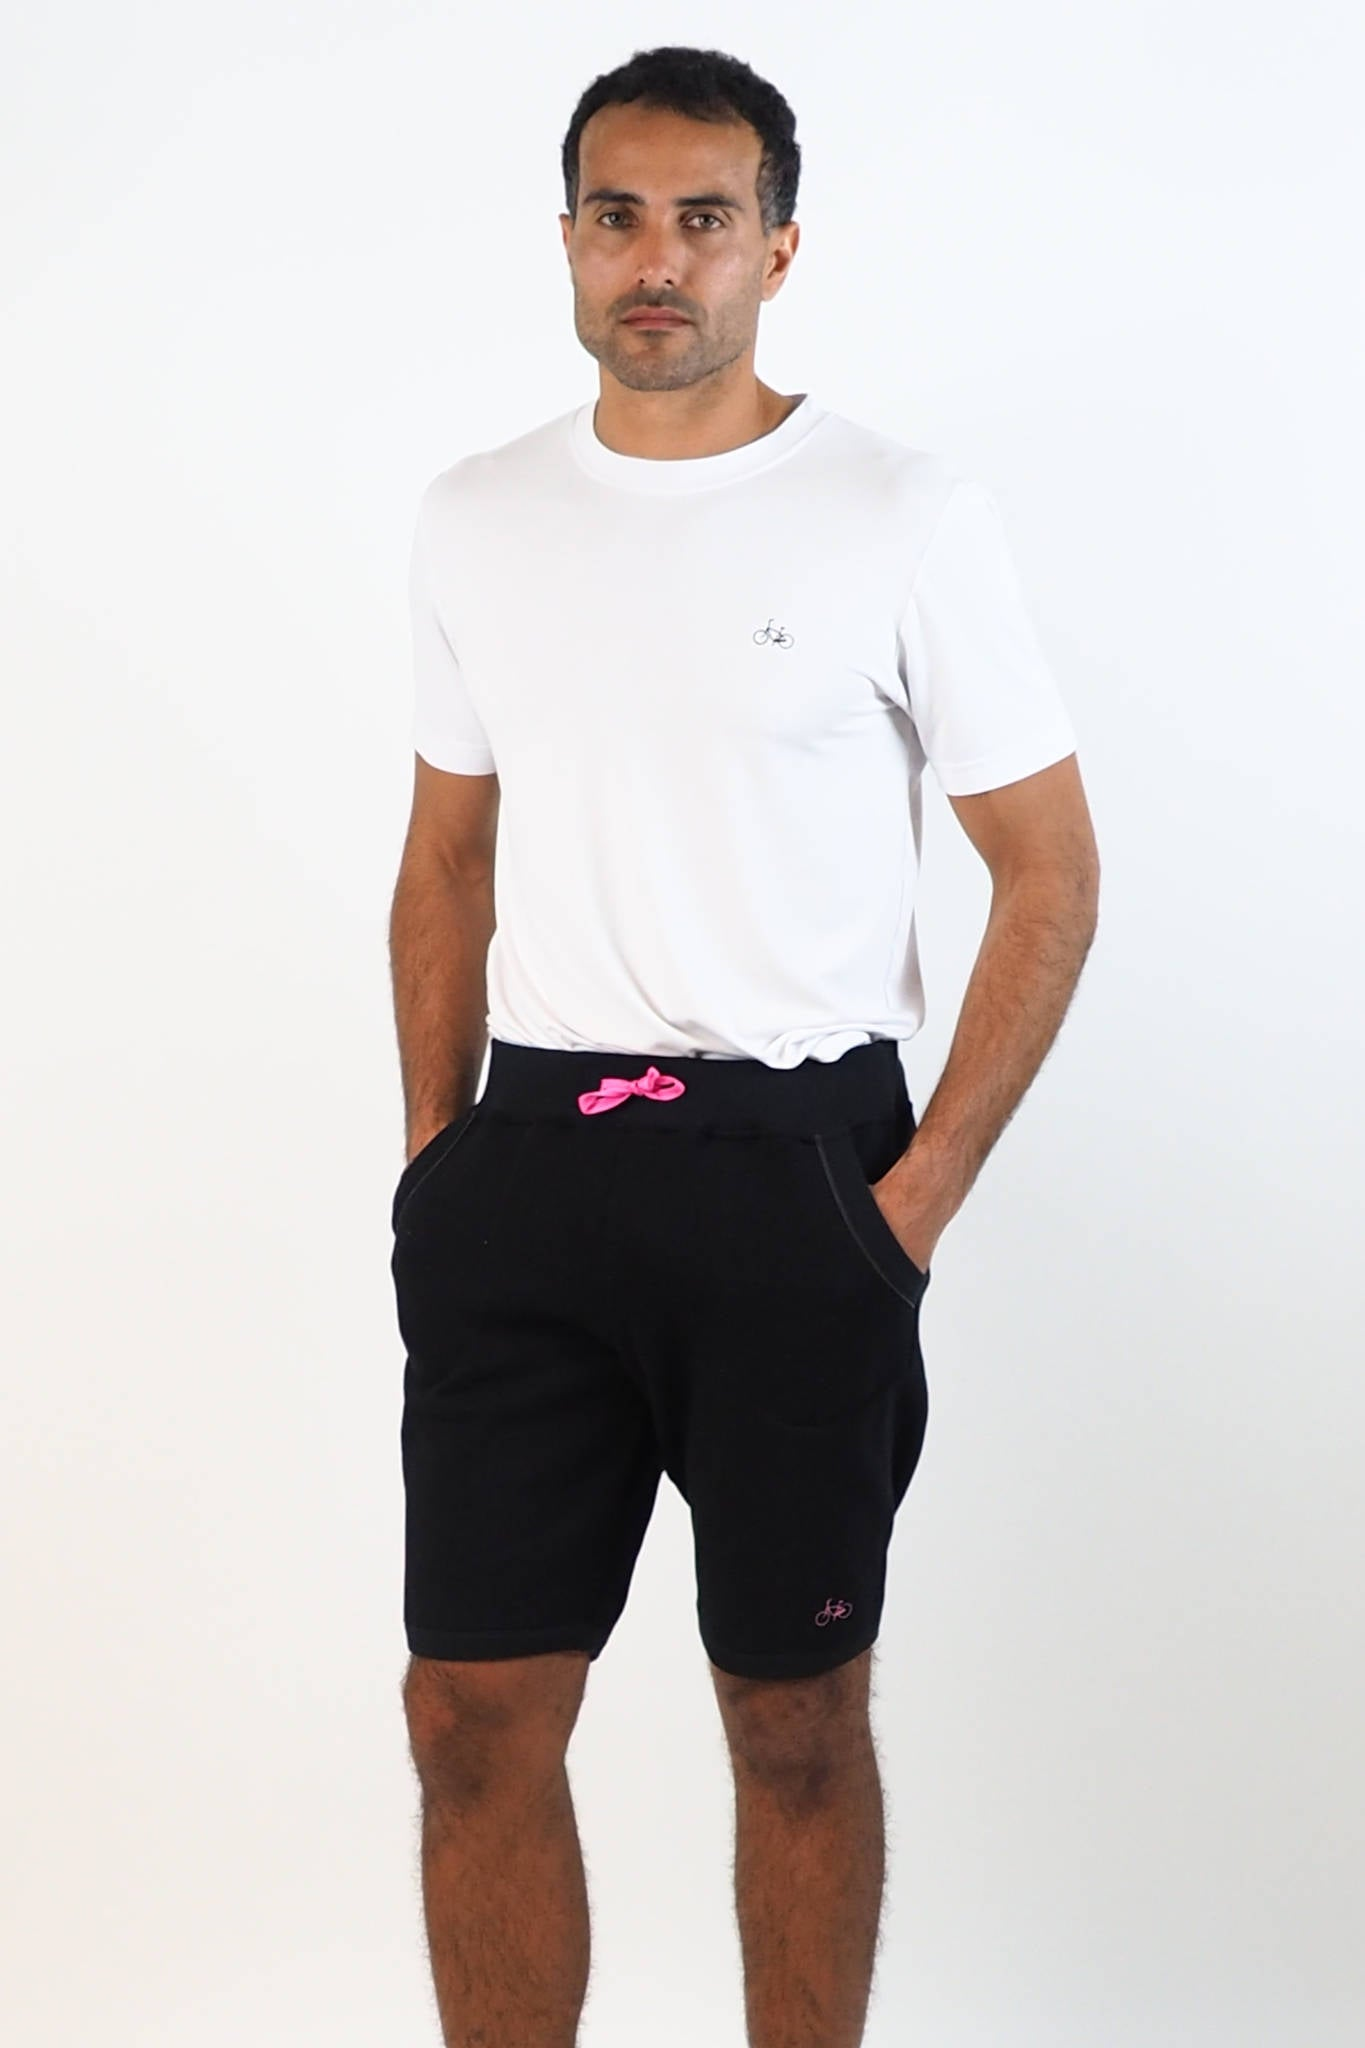 Upside Cyclestyle Men's Tapered Fleece Shorts in Black on model